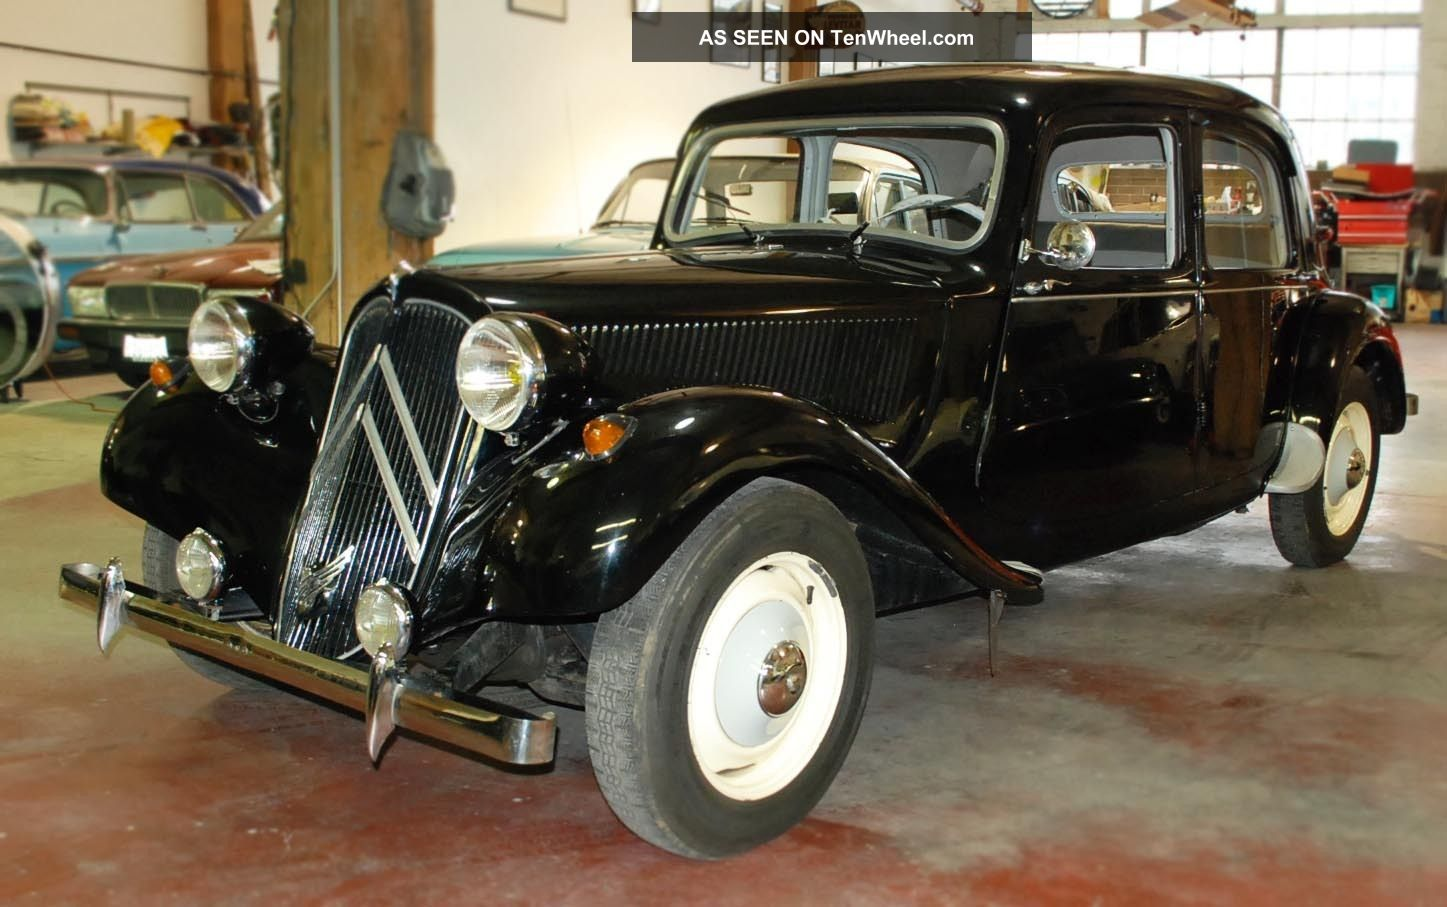 1957 Citroen Traction Avant Ii Normale By Well Known Citroen Enthusiast